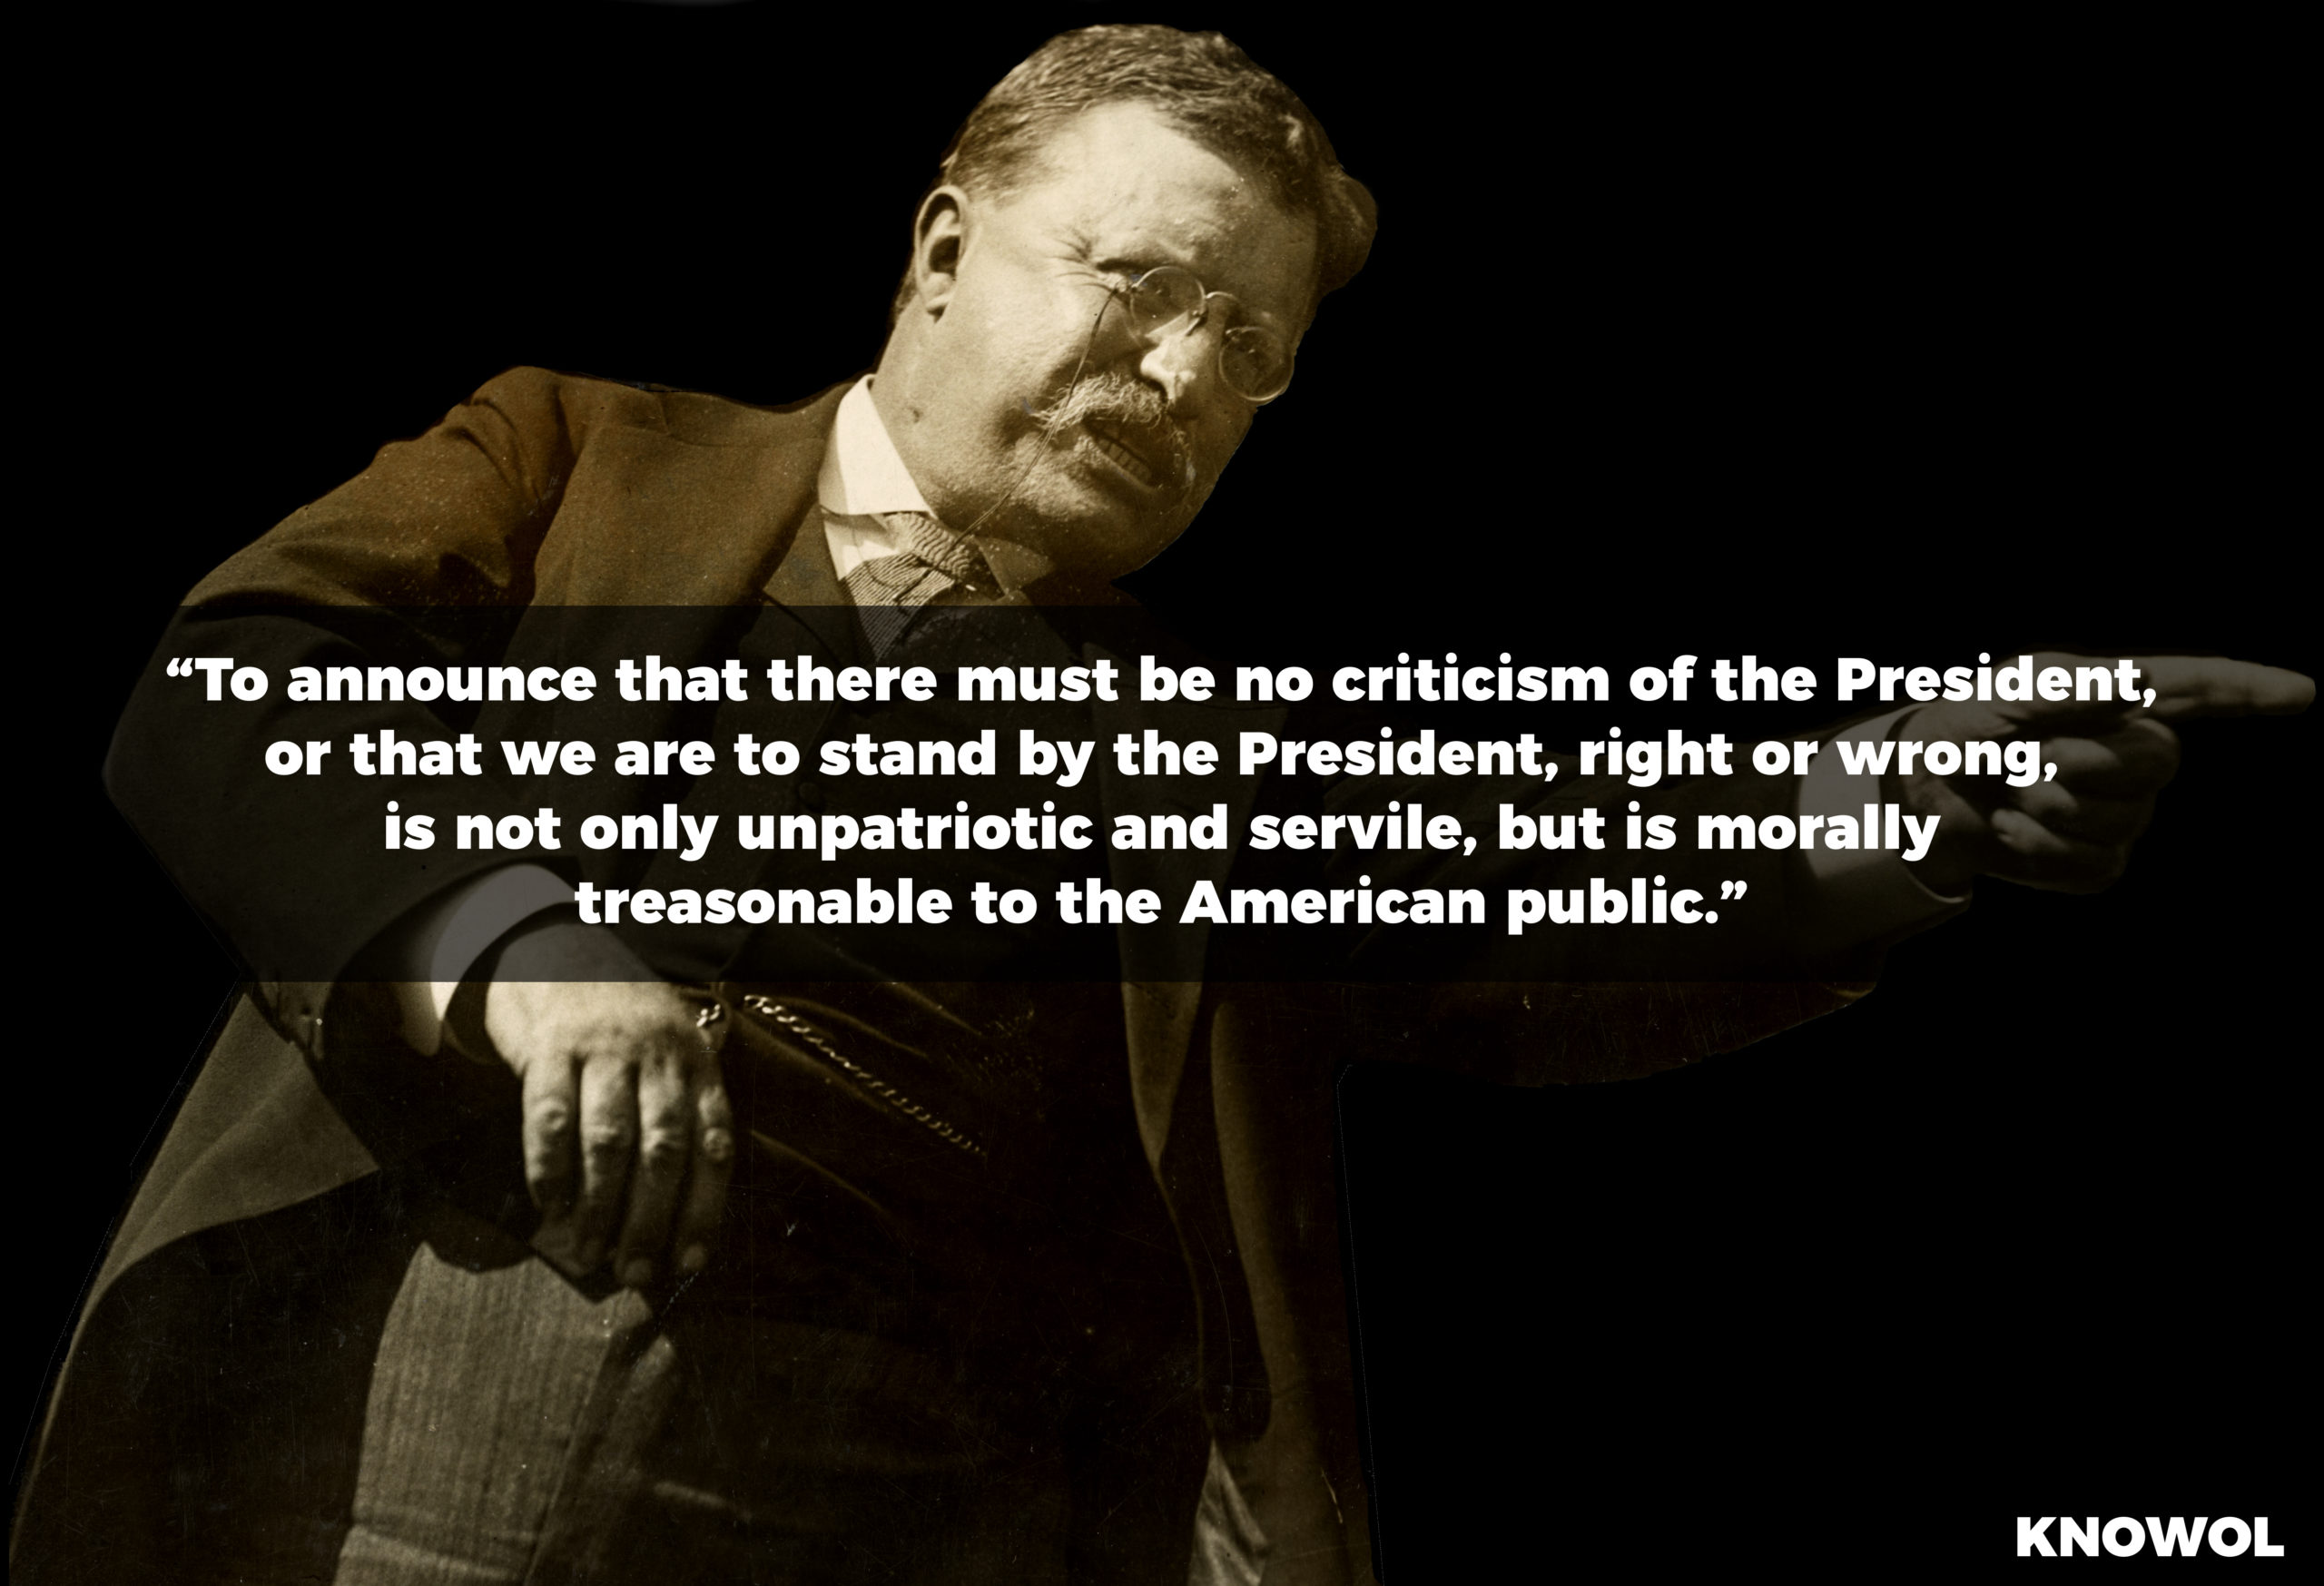 Theodore Roosevelt Quotes Classy Theodore Roosevelt Discusses Criticism Of The President  Knowol